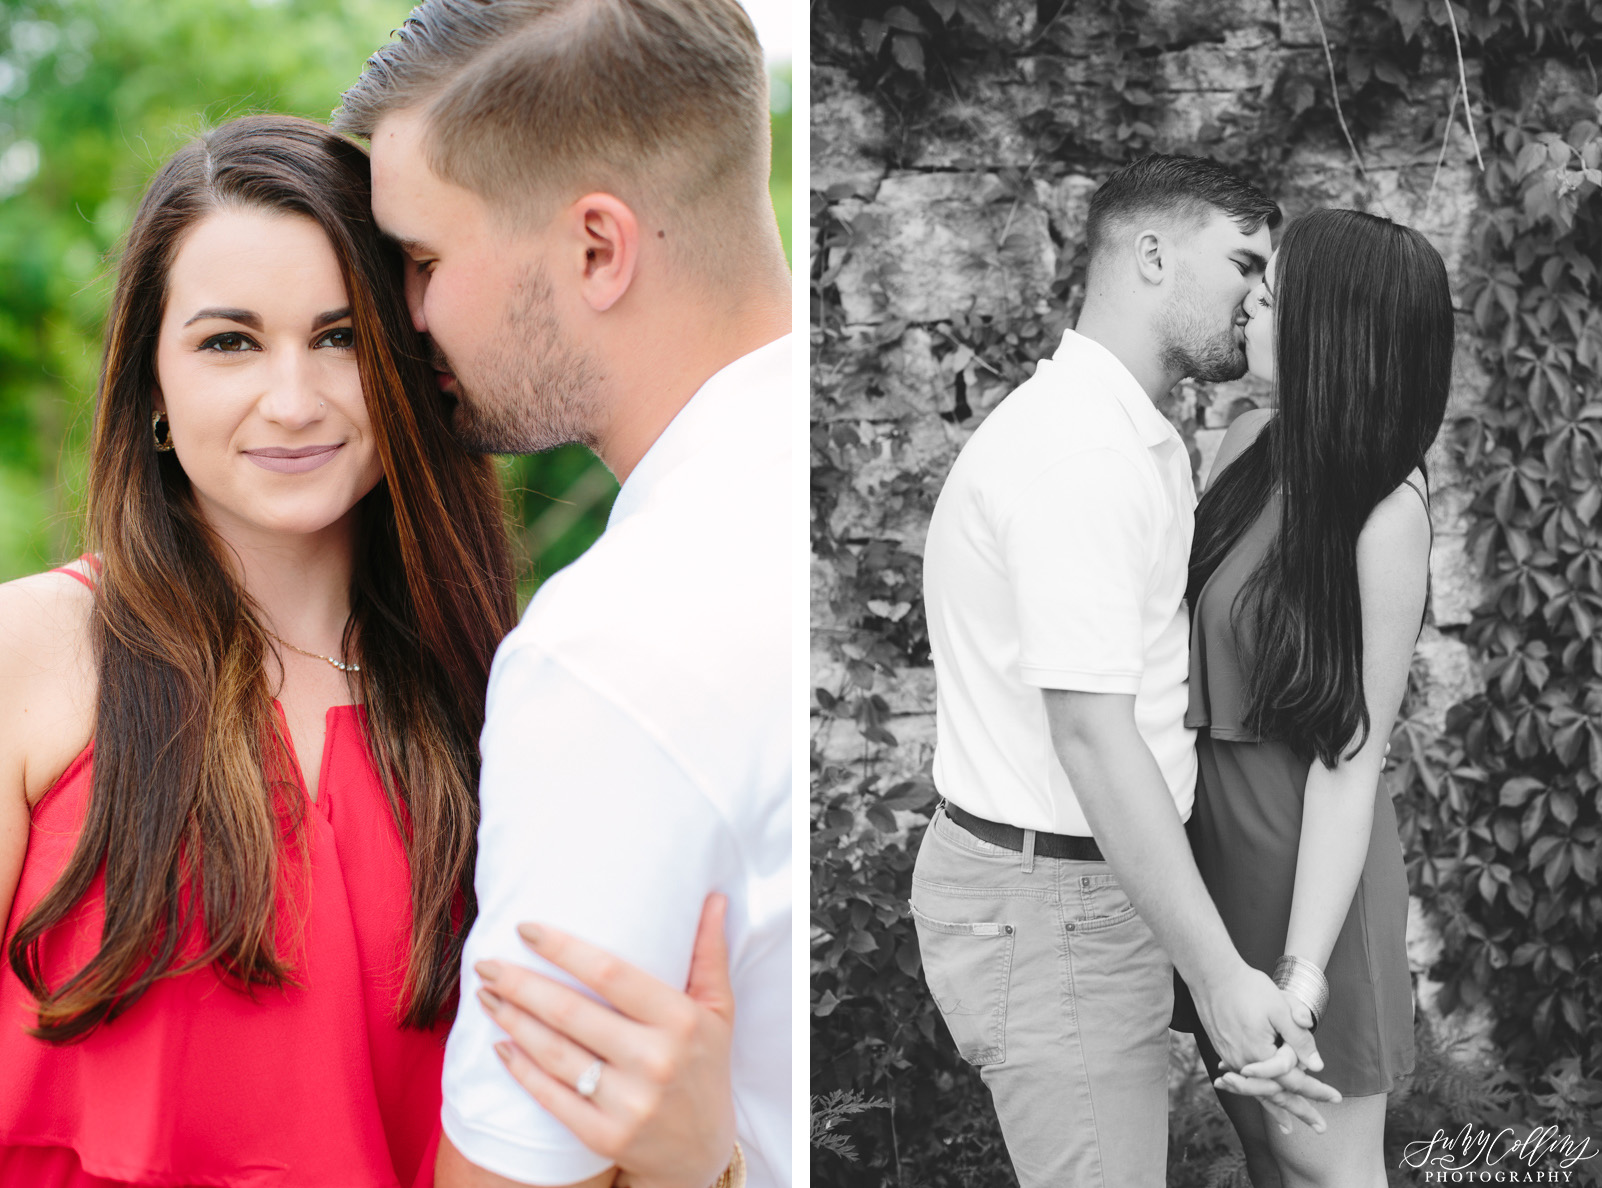 poses, couples, outdoor, meads quarry, Knoxville, Tennessee, engagement, sunset, evening, love, vibrant, colorful, bright, creative, romantic, natural, light and airy, natural light, passion, inspiration, intimate, outfits, fountain, woods, pond, park, black and white, kiss